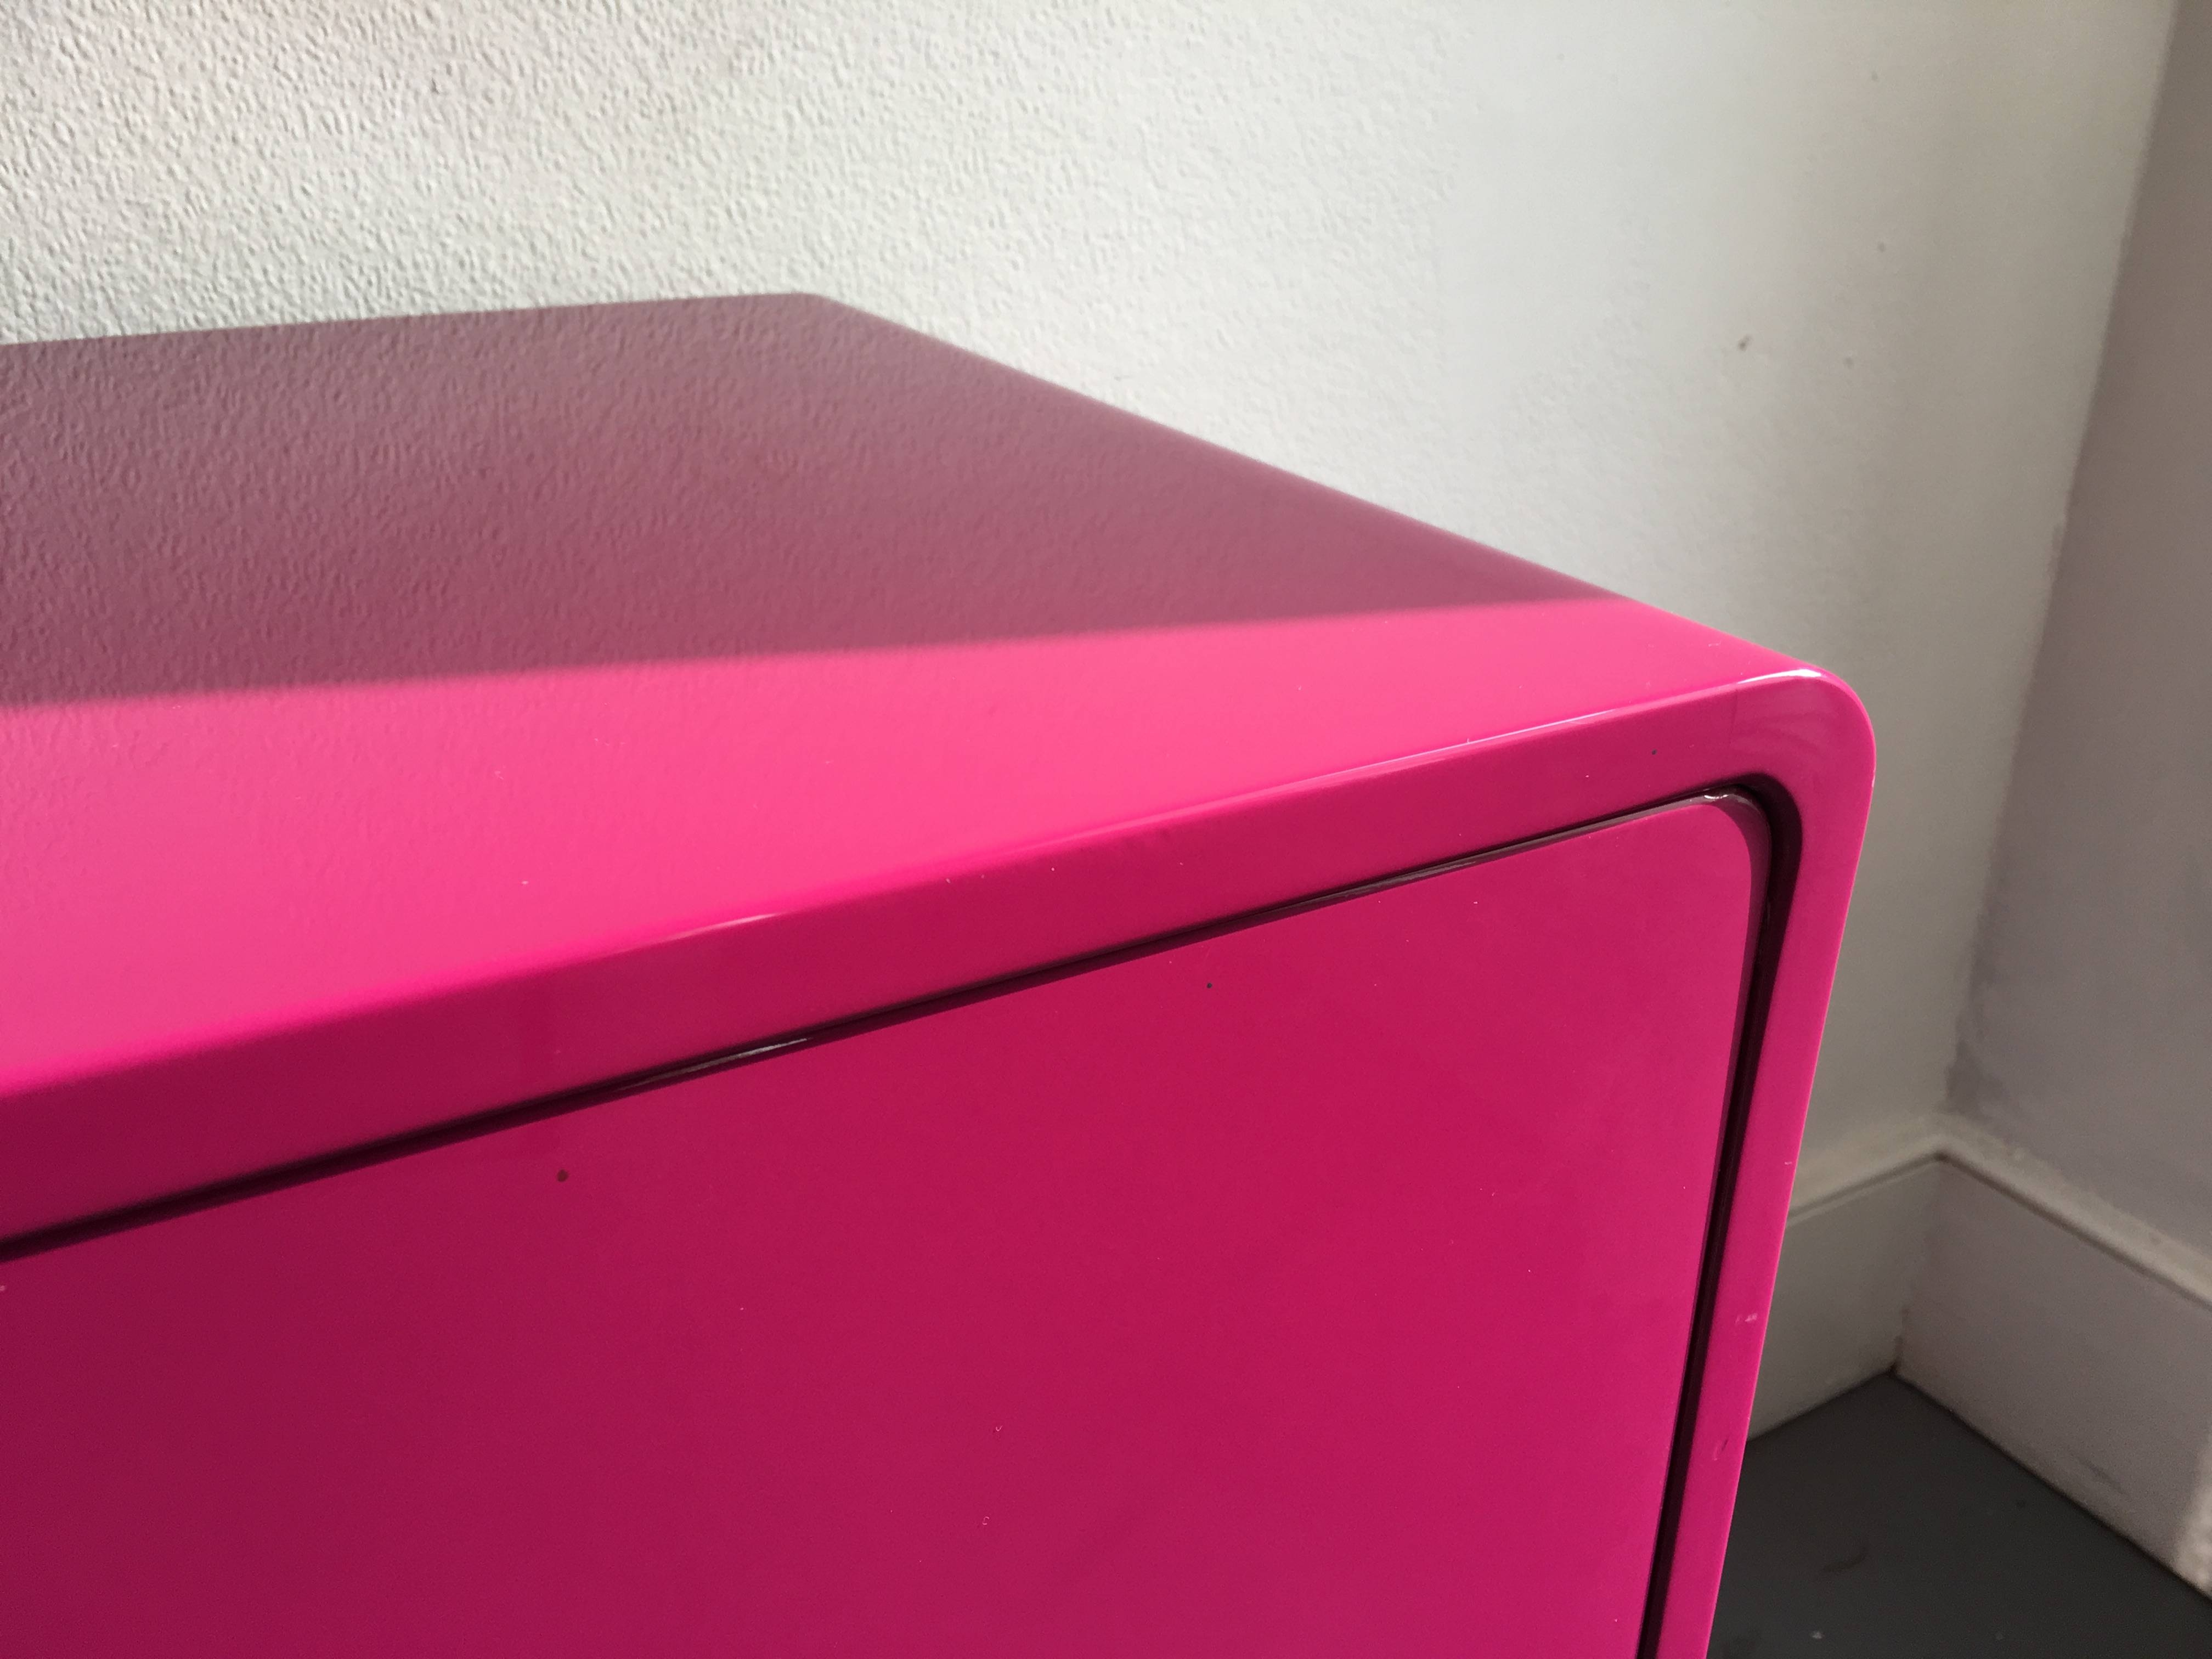 Inspiration about 60's Inspired High Gloss Lacquered Sideboard In Hot Pink And Red Regarding Red High Gloss Sideboards (#14 of 15)